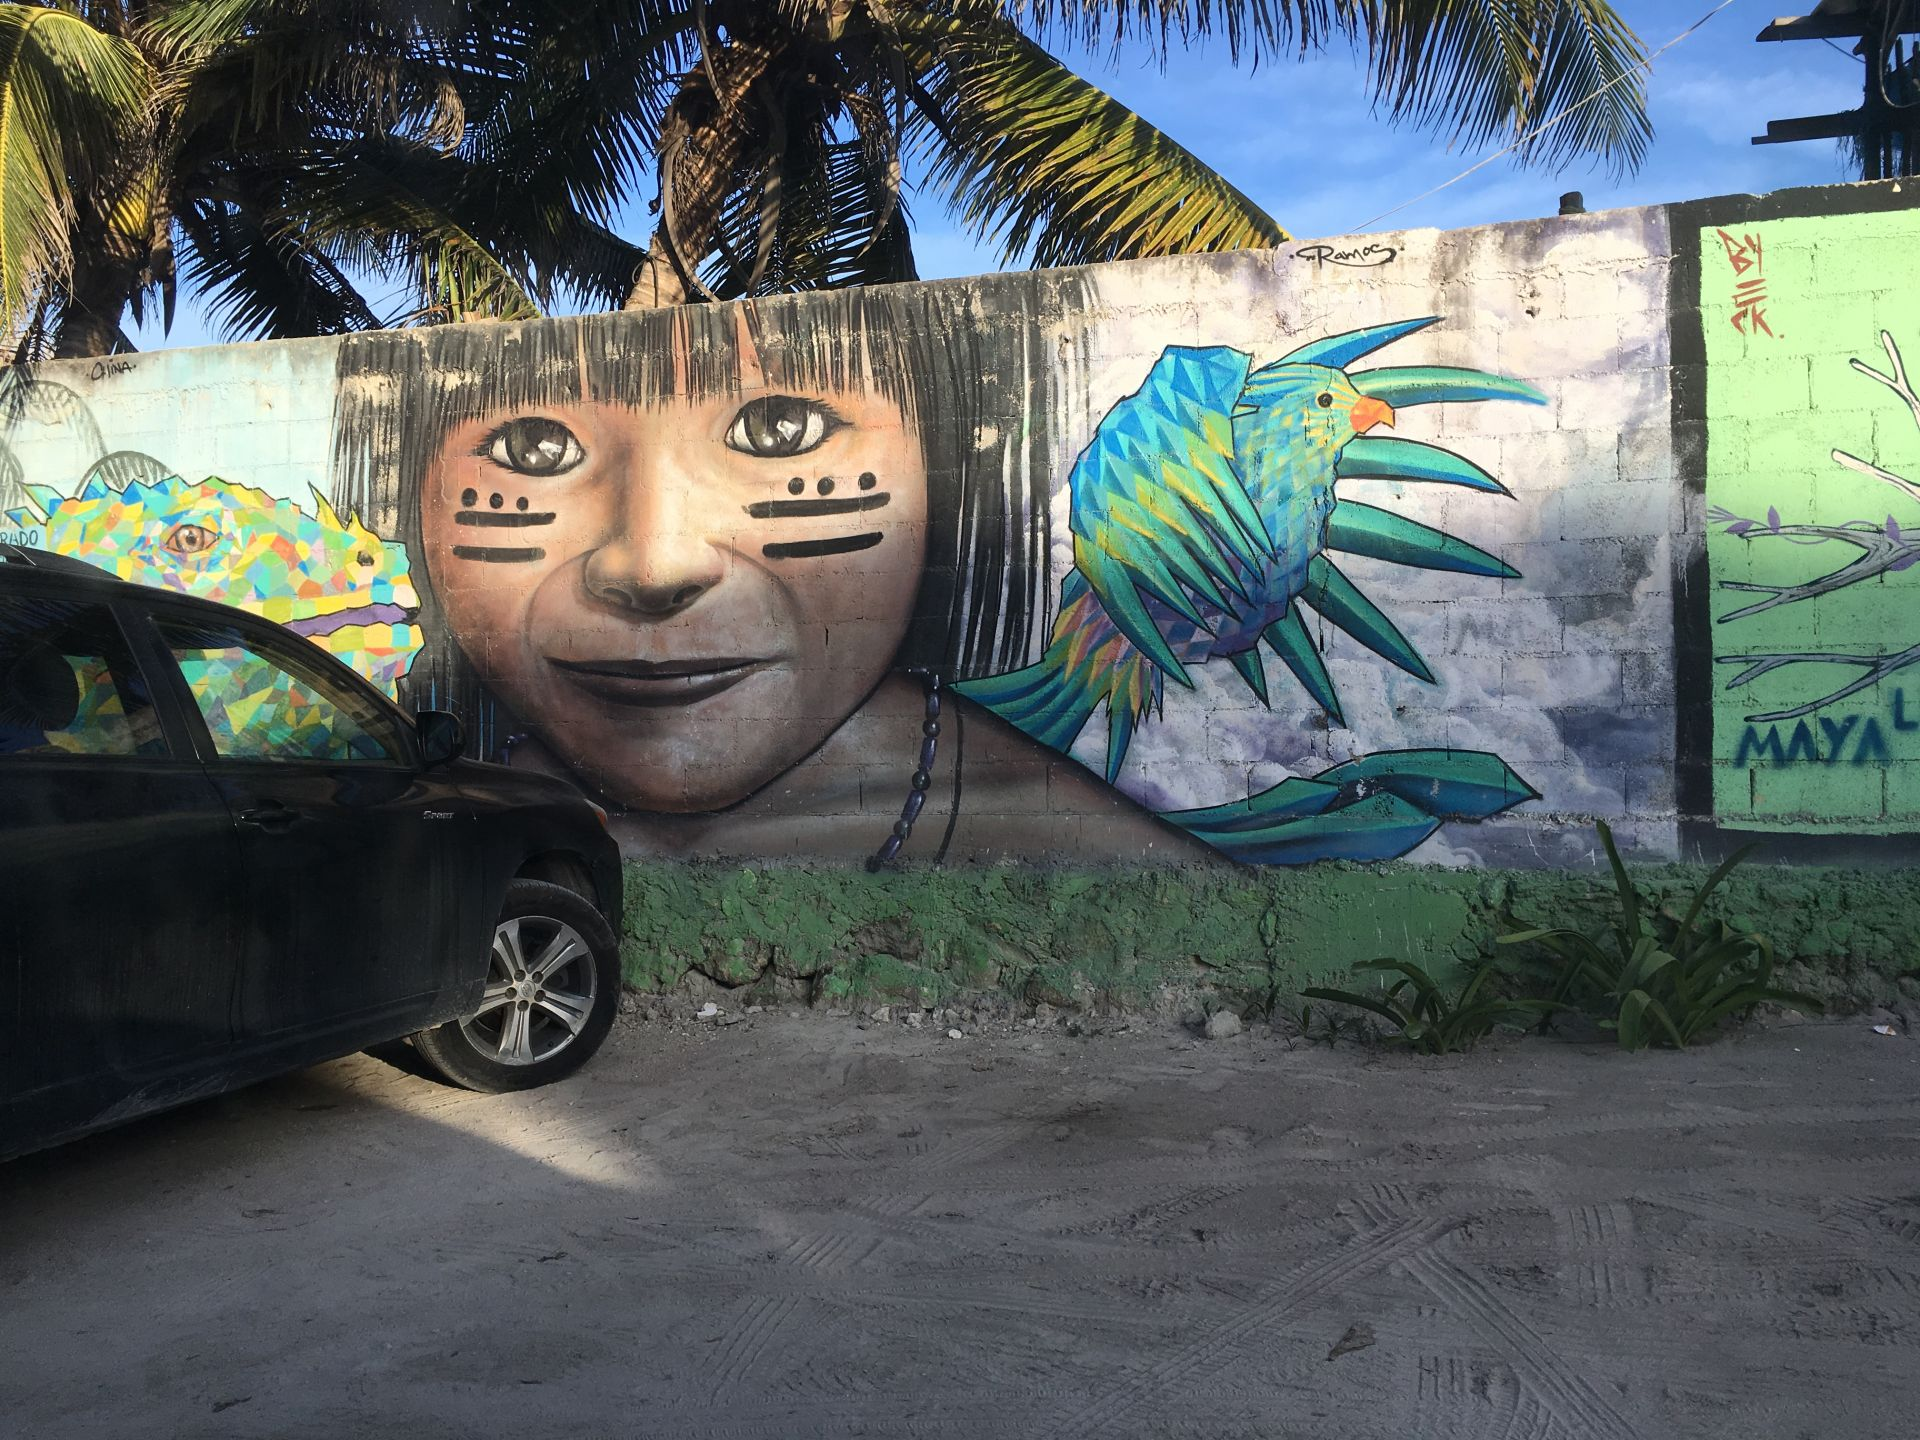 There are lots of beautiful murals in Tulum